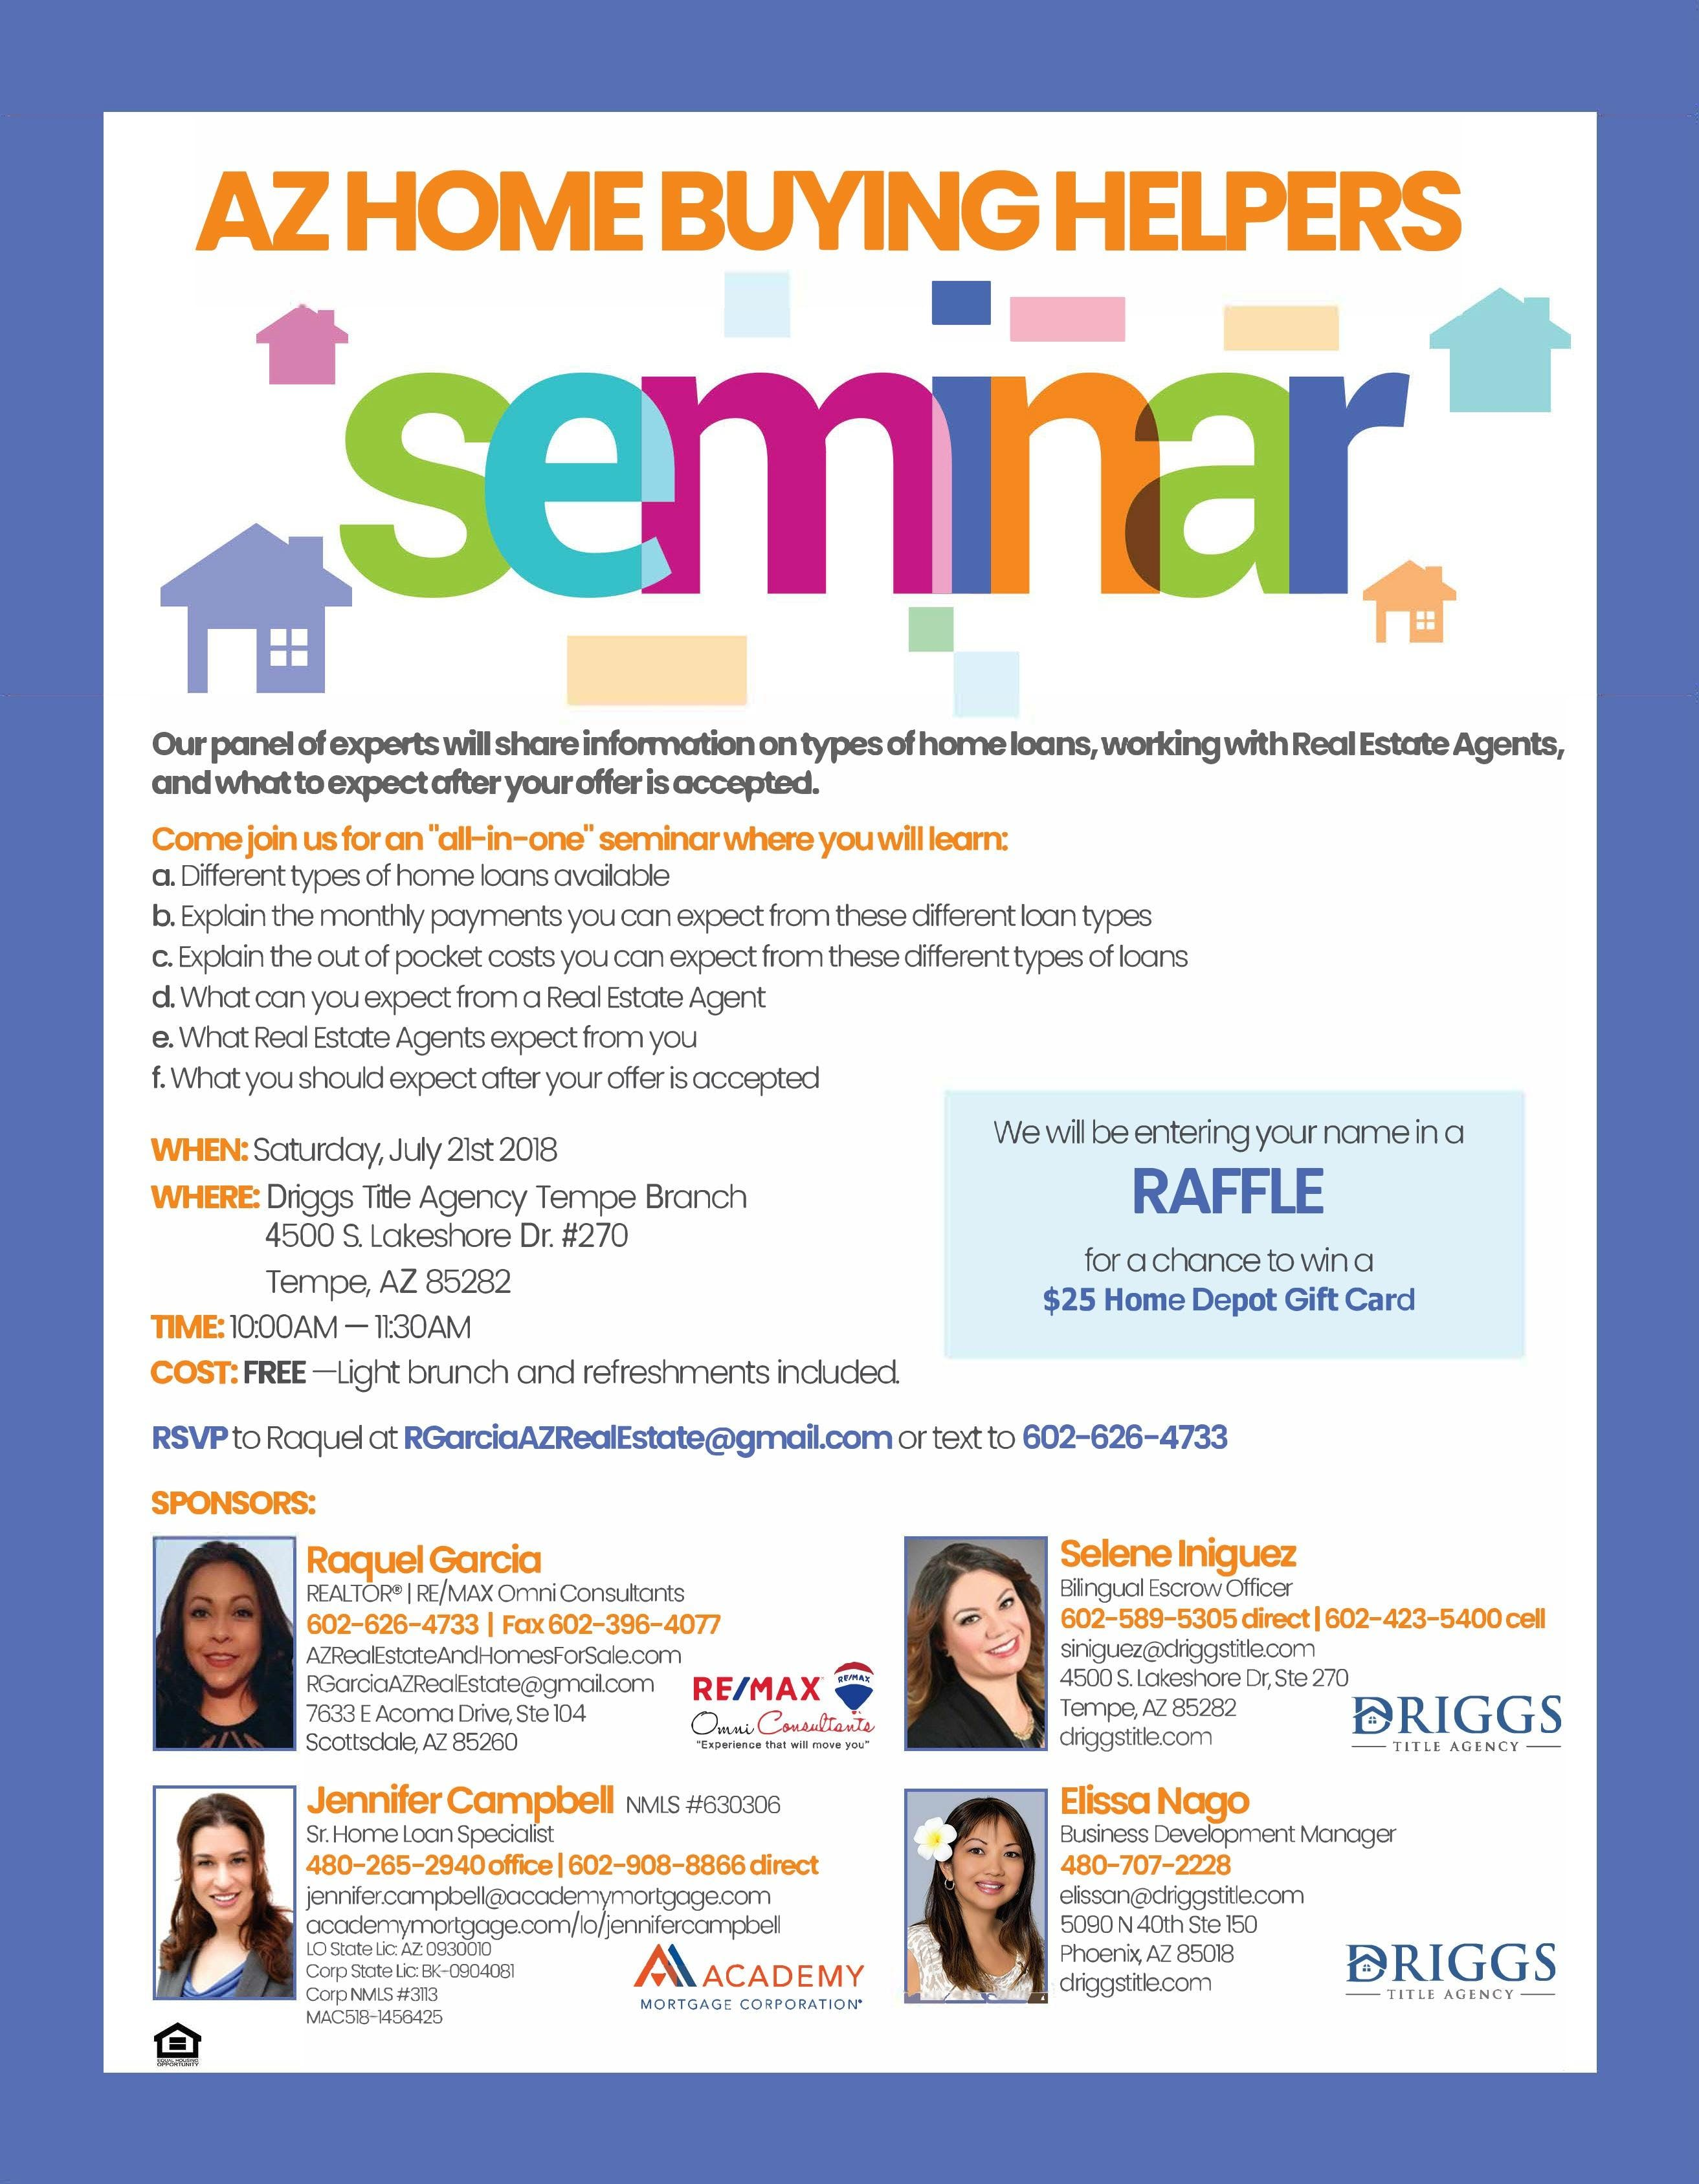 Home Buying Helpers Seminar, August 3rd 2019